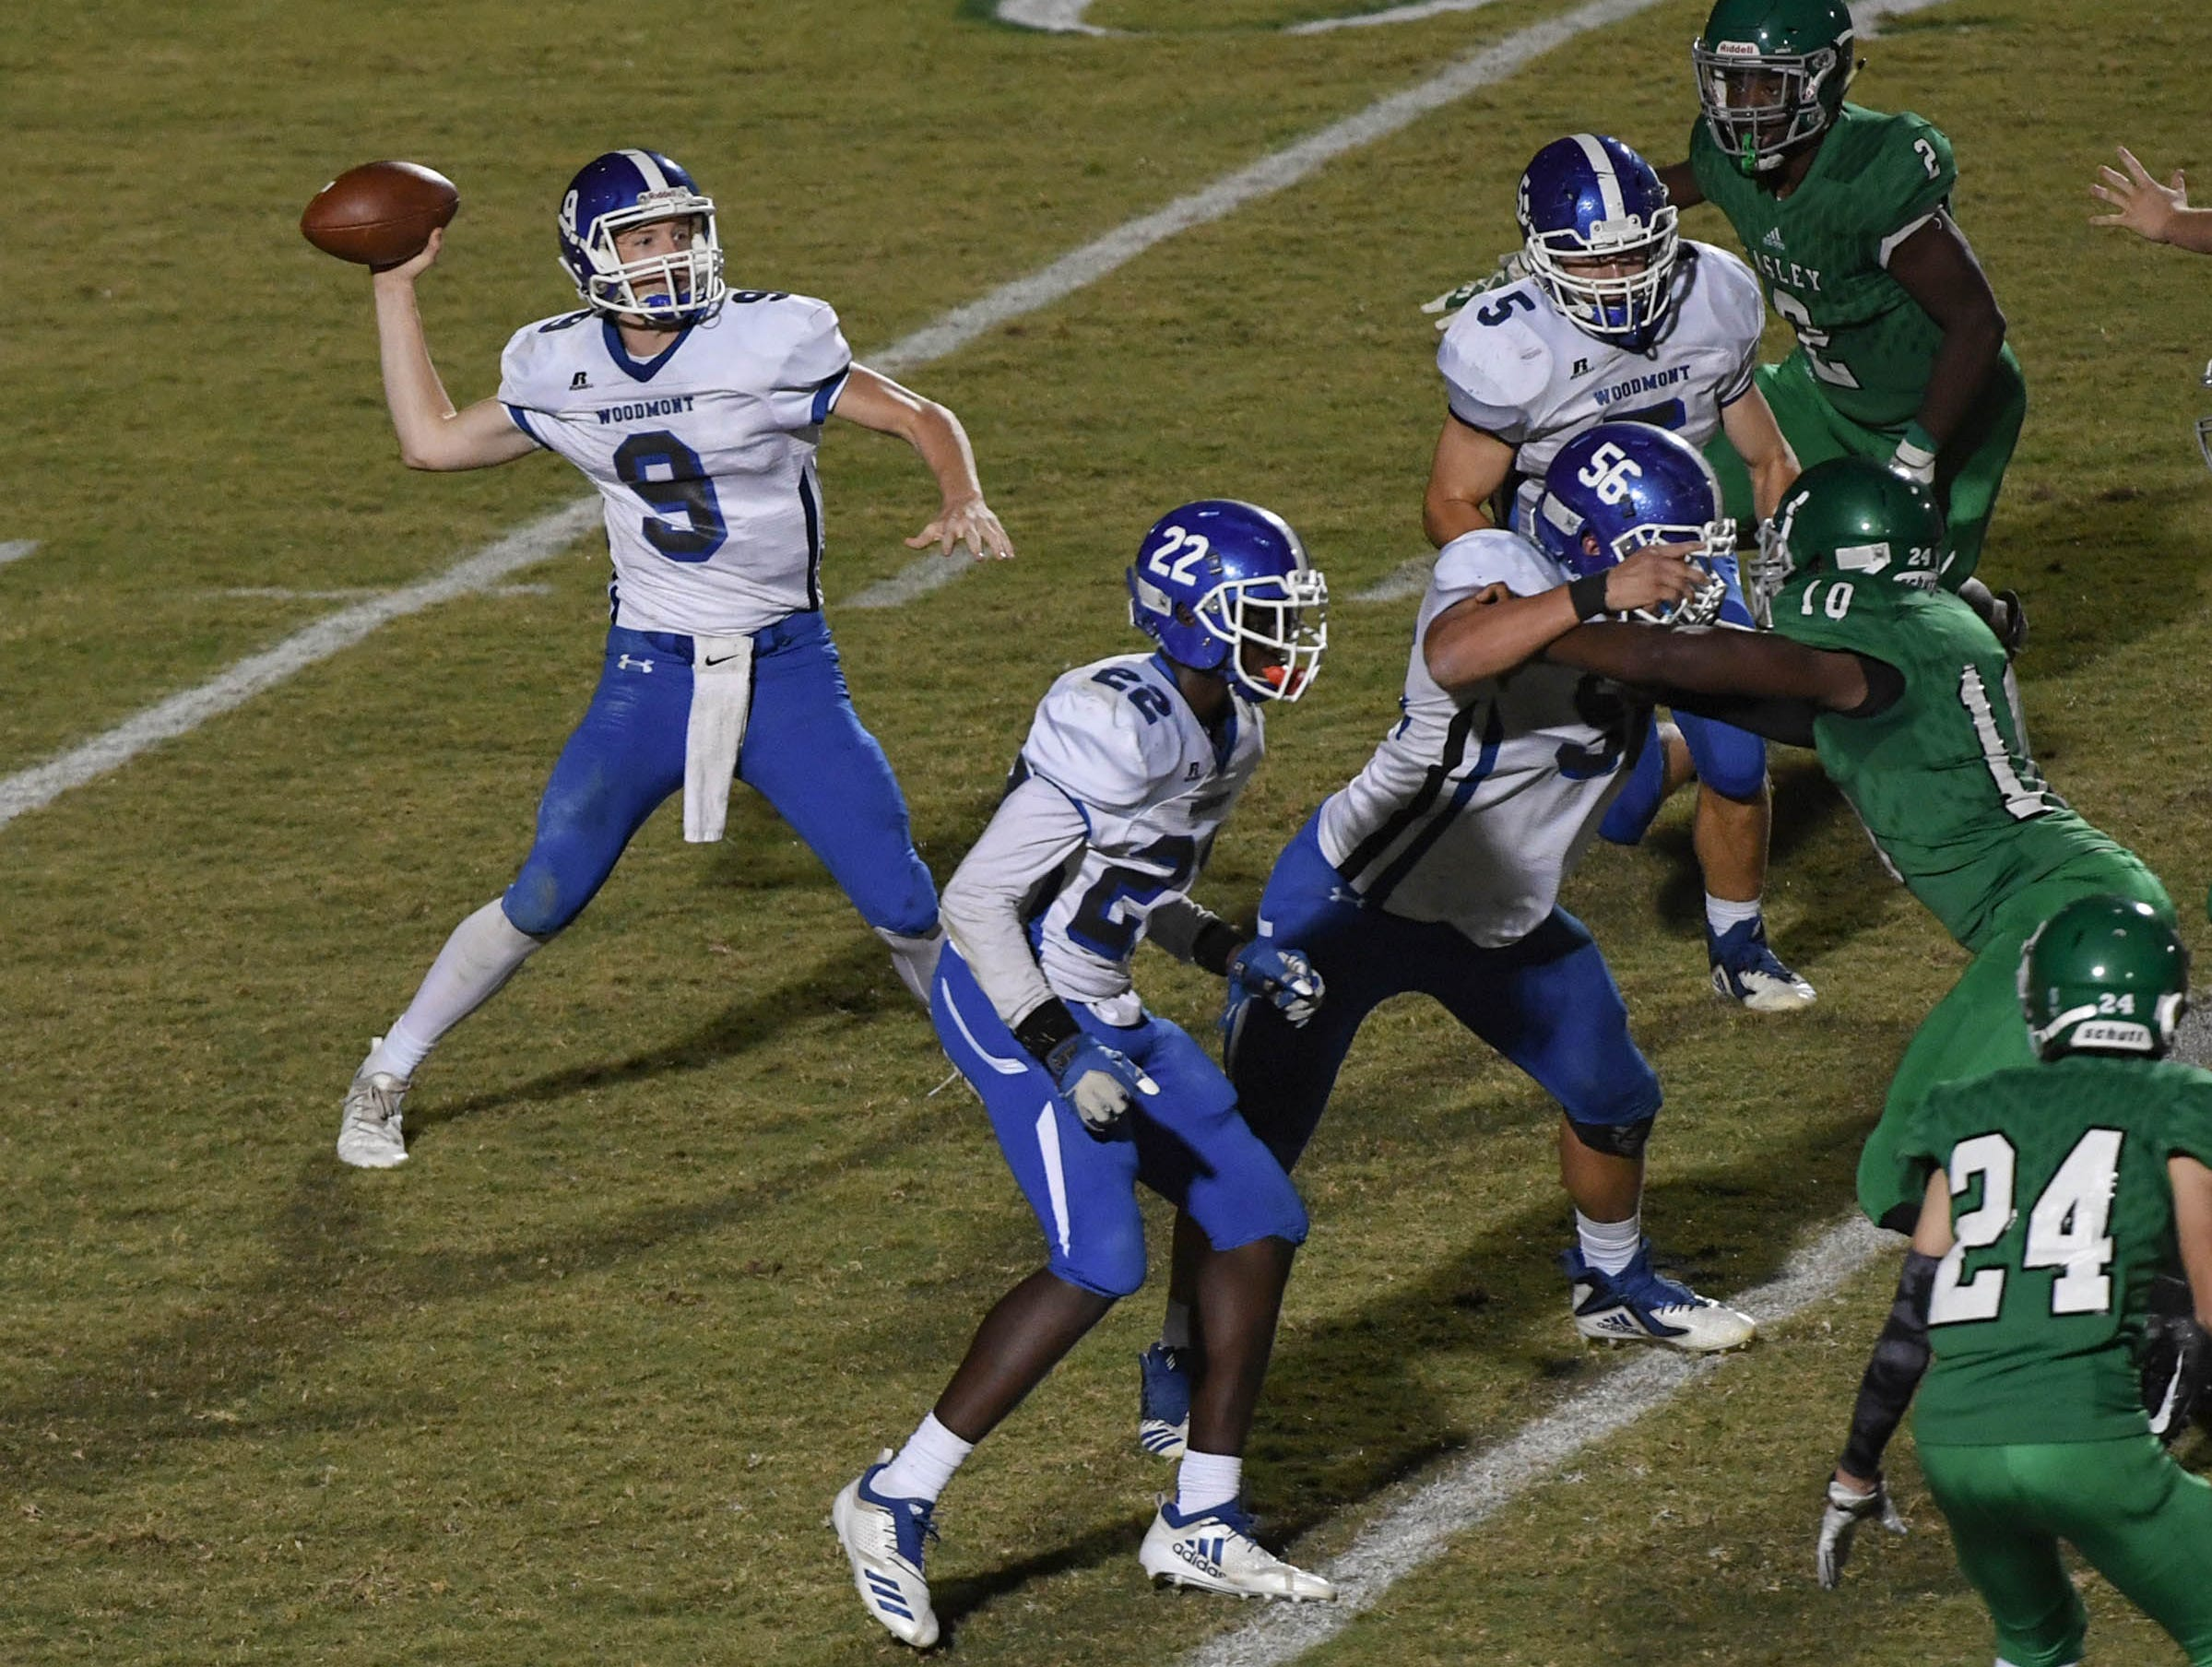 Woodmont's Clay Bartunek throws during the second quarter at at Easley High School in Easley on Friday, October 19, 2018. .